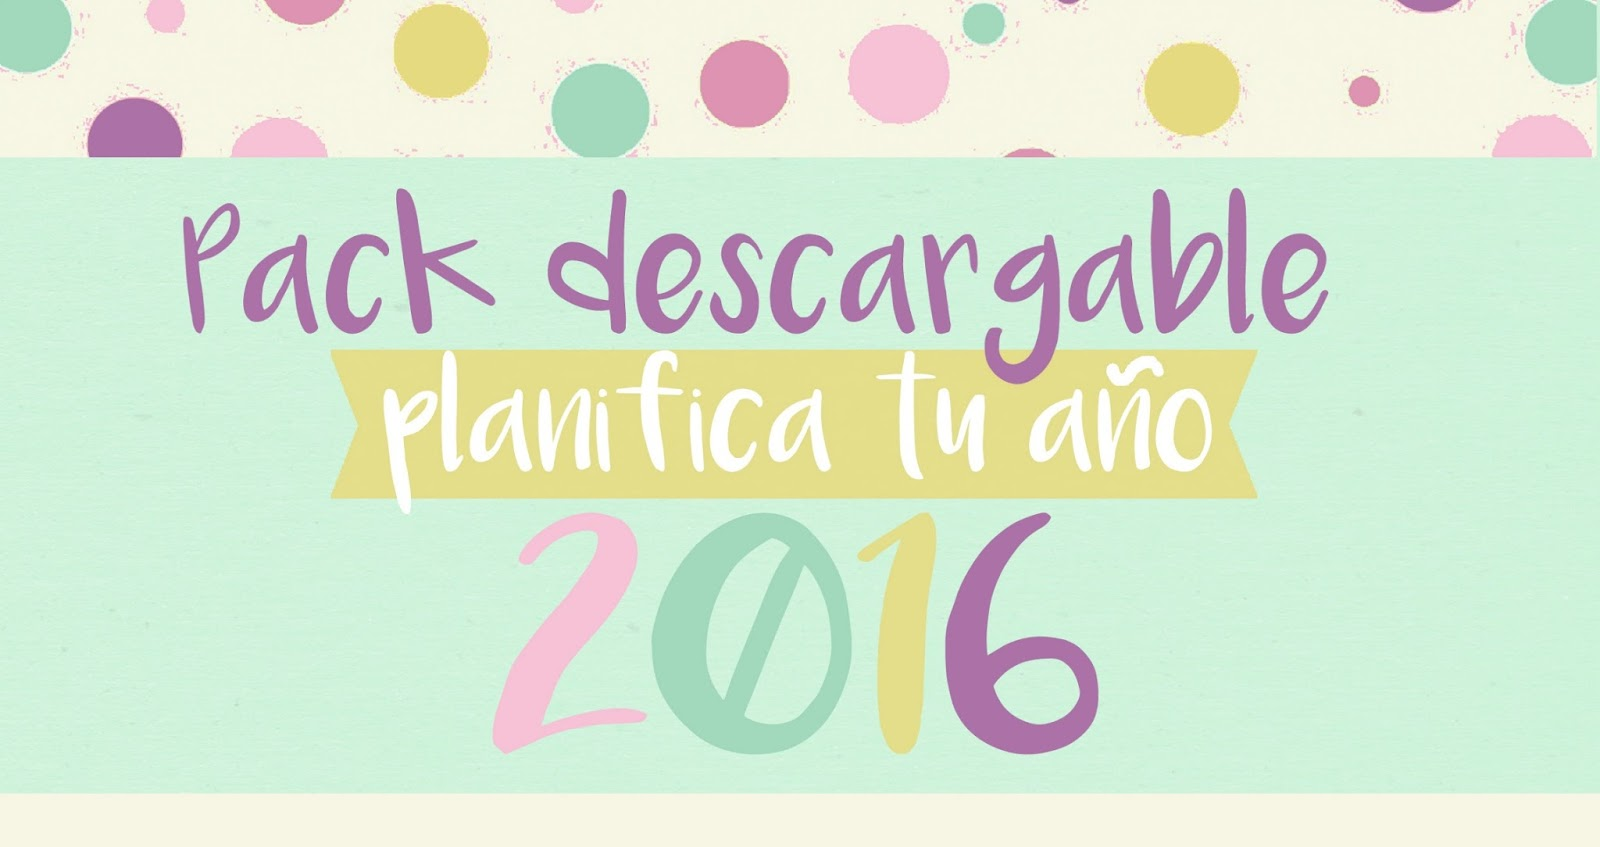 ... IDEAS: Descargables: Pack planifica tu año 2016 con Agenda imprimible